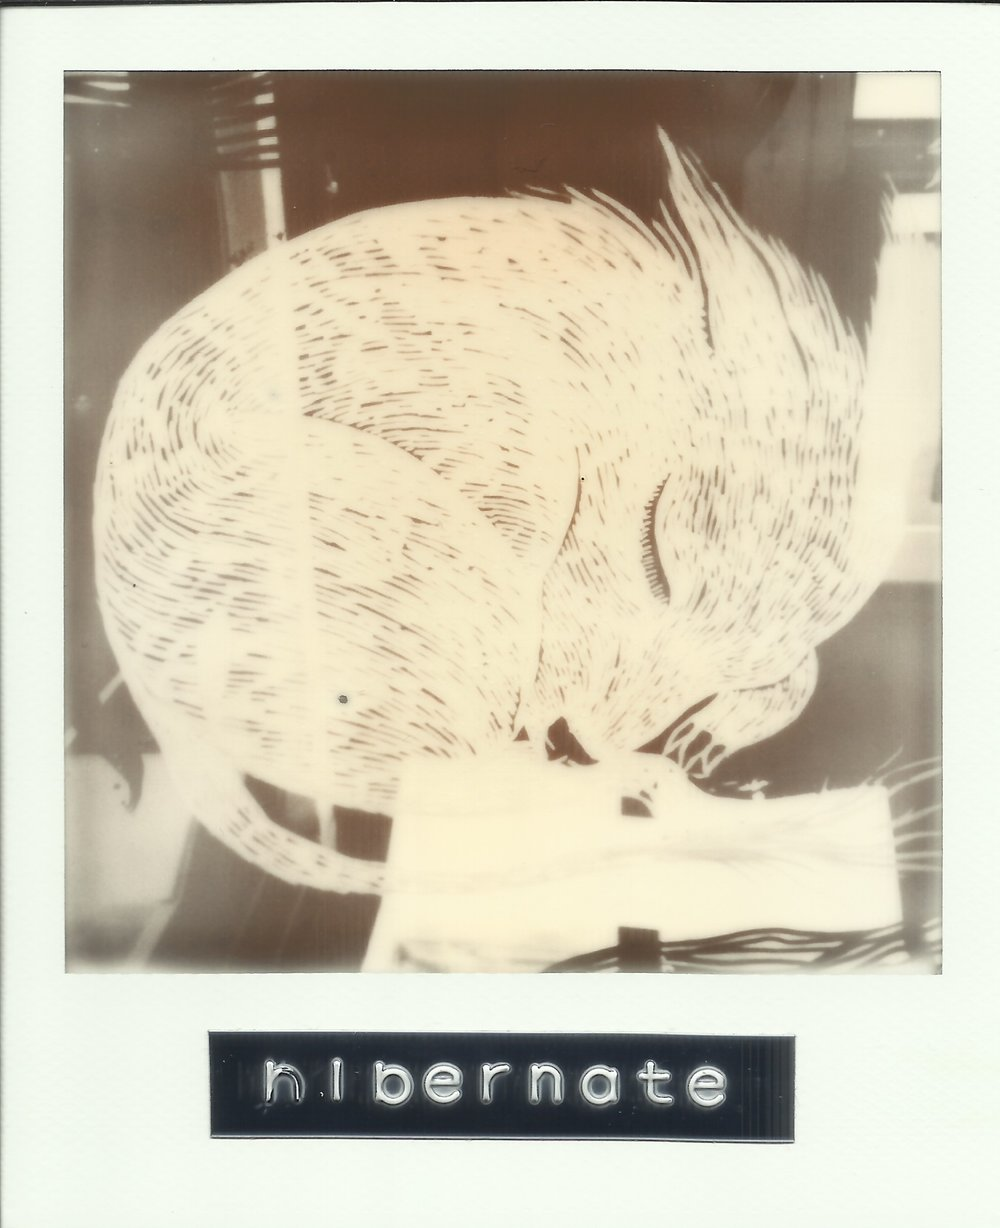 PolaroidOracle1 1.jpeg